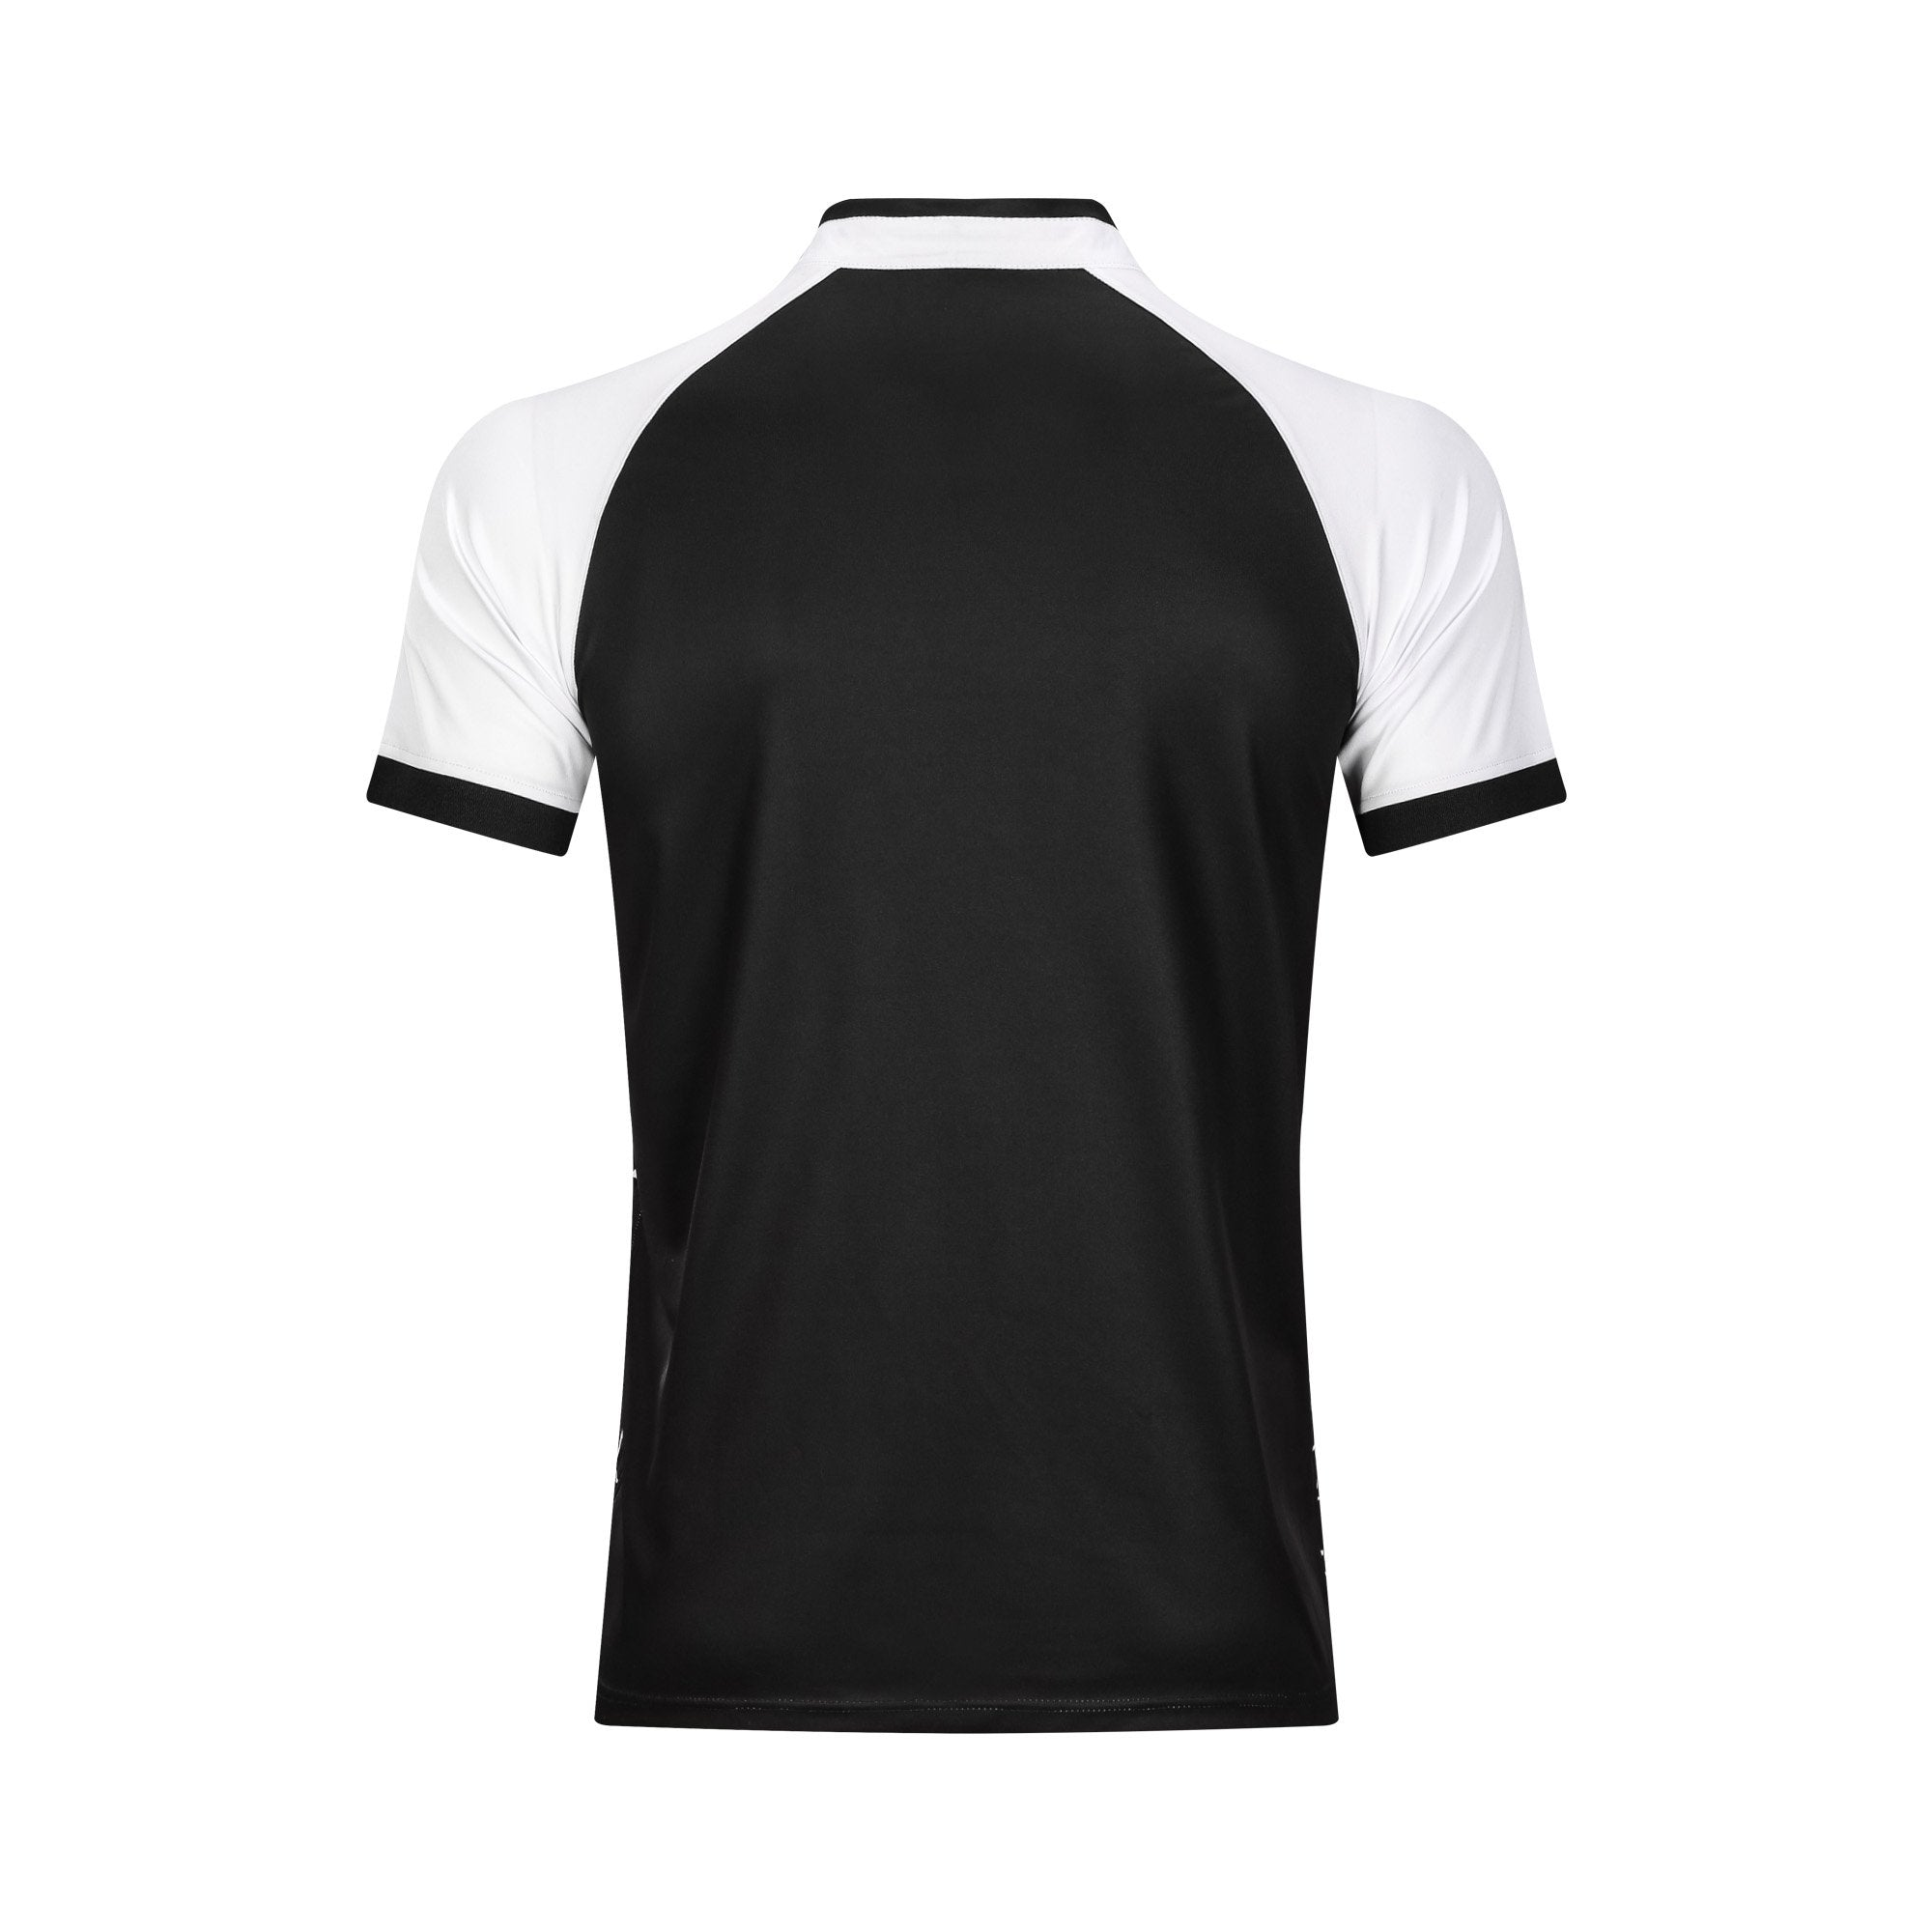 TPM SOGAM Supporter Jersey - Mens